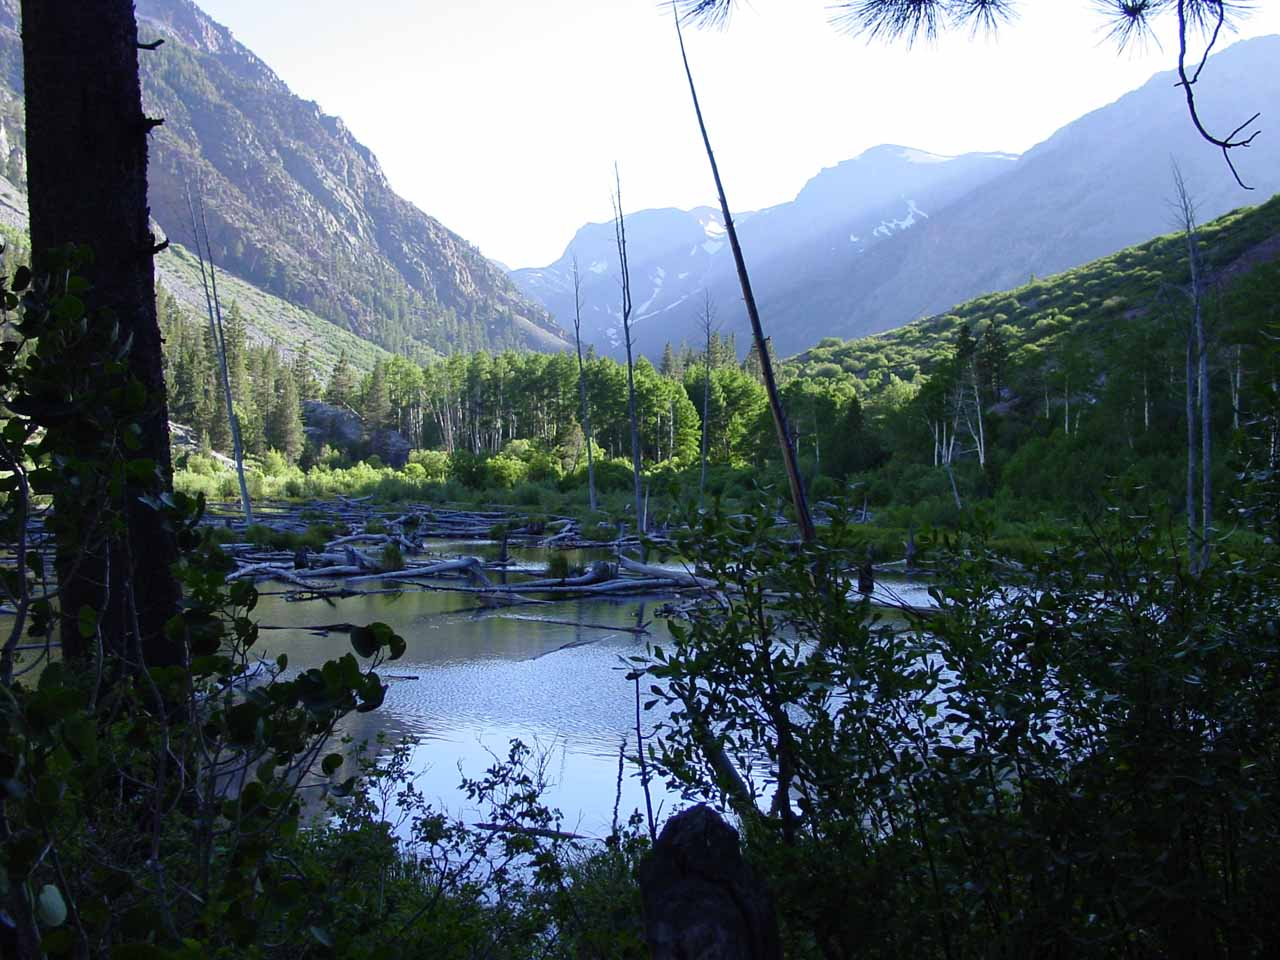 Looking over some swampy pond in the direction of Lundy Canyon near the trailhead